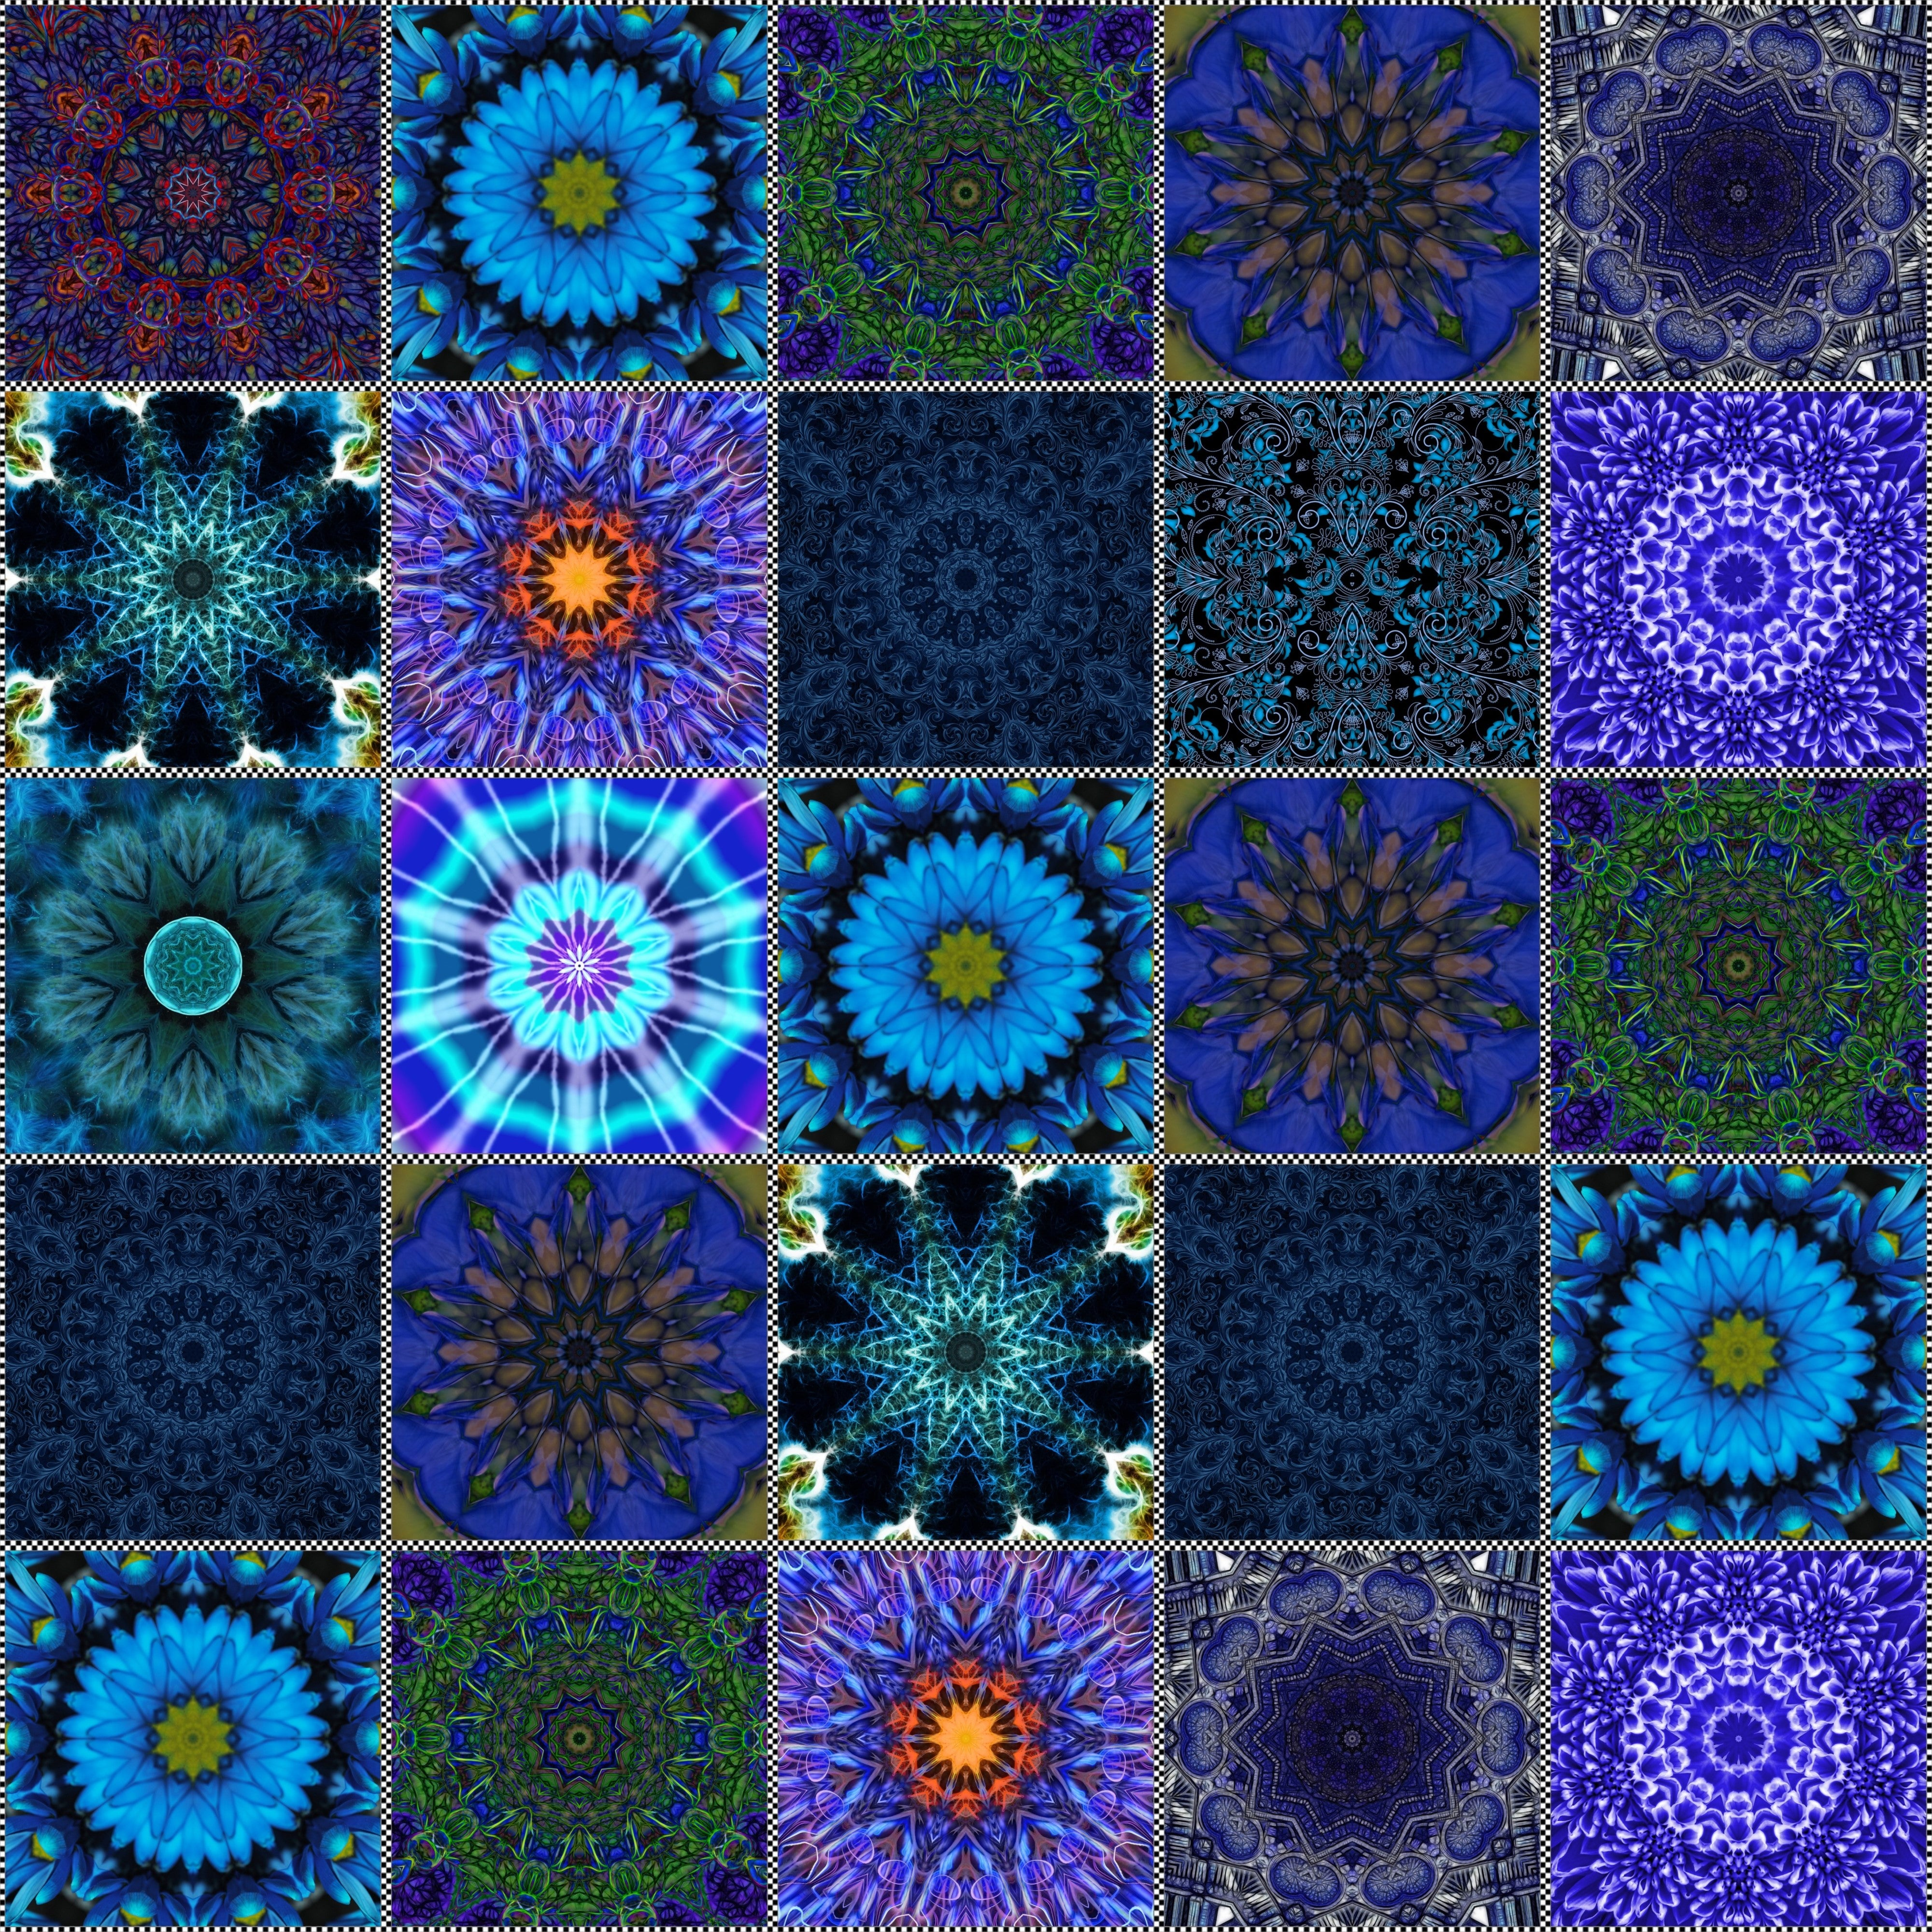 Blue Kaleidoscope Quilt Digital Image Download